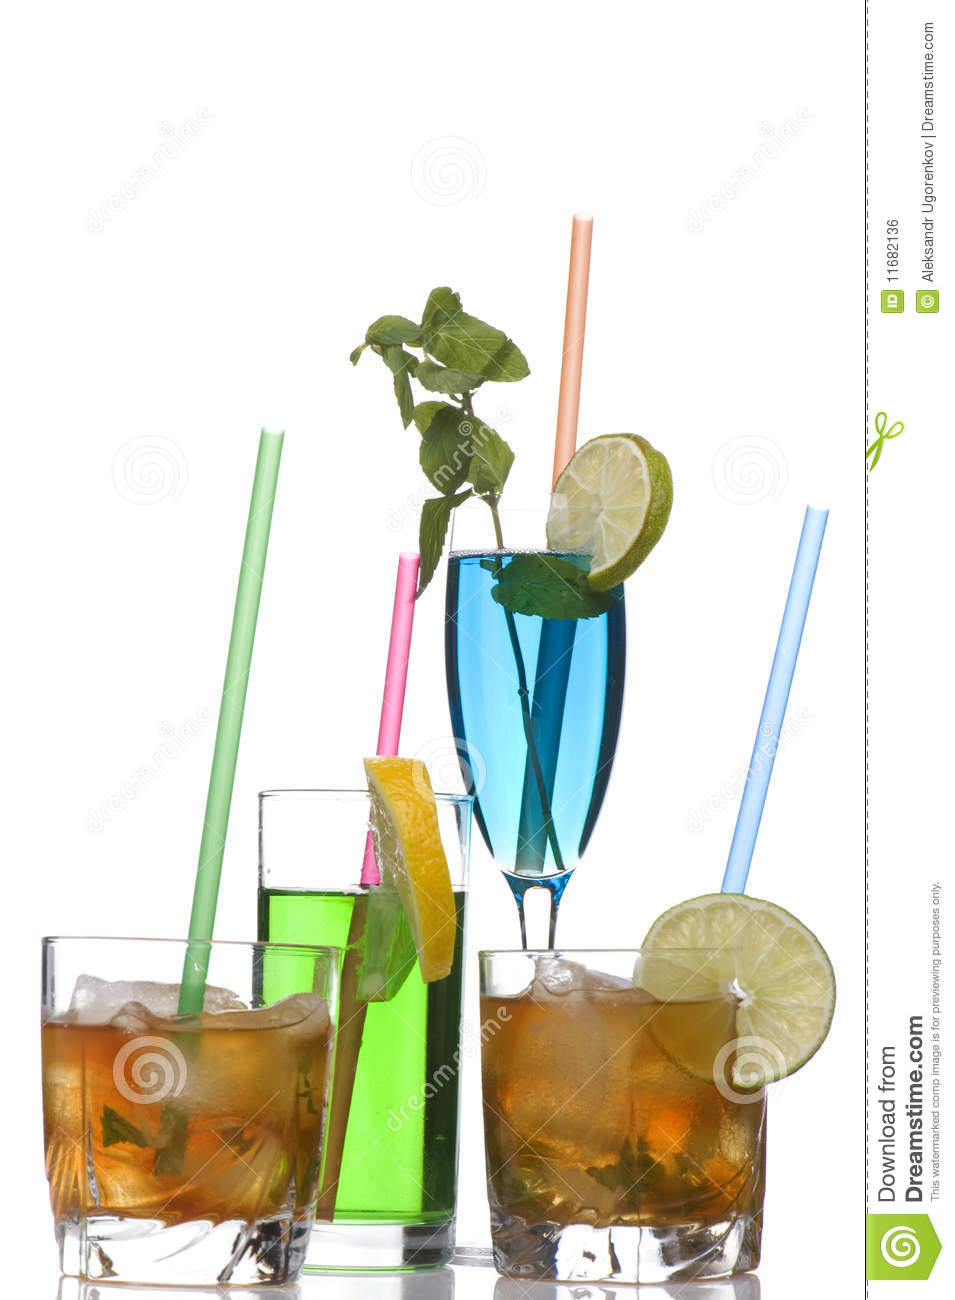 Glass Of Whiskey And Cocktail On Royalty Free Stock Image - Image ...